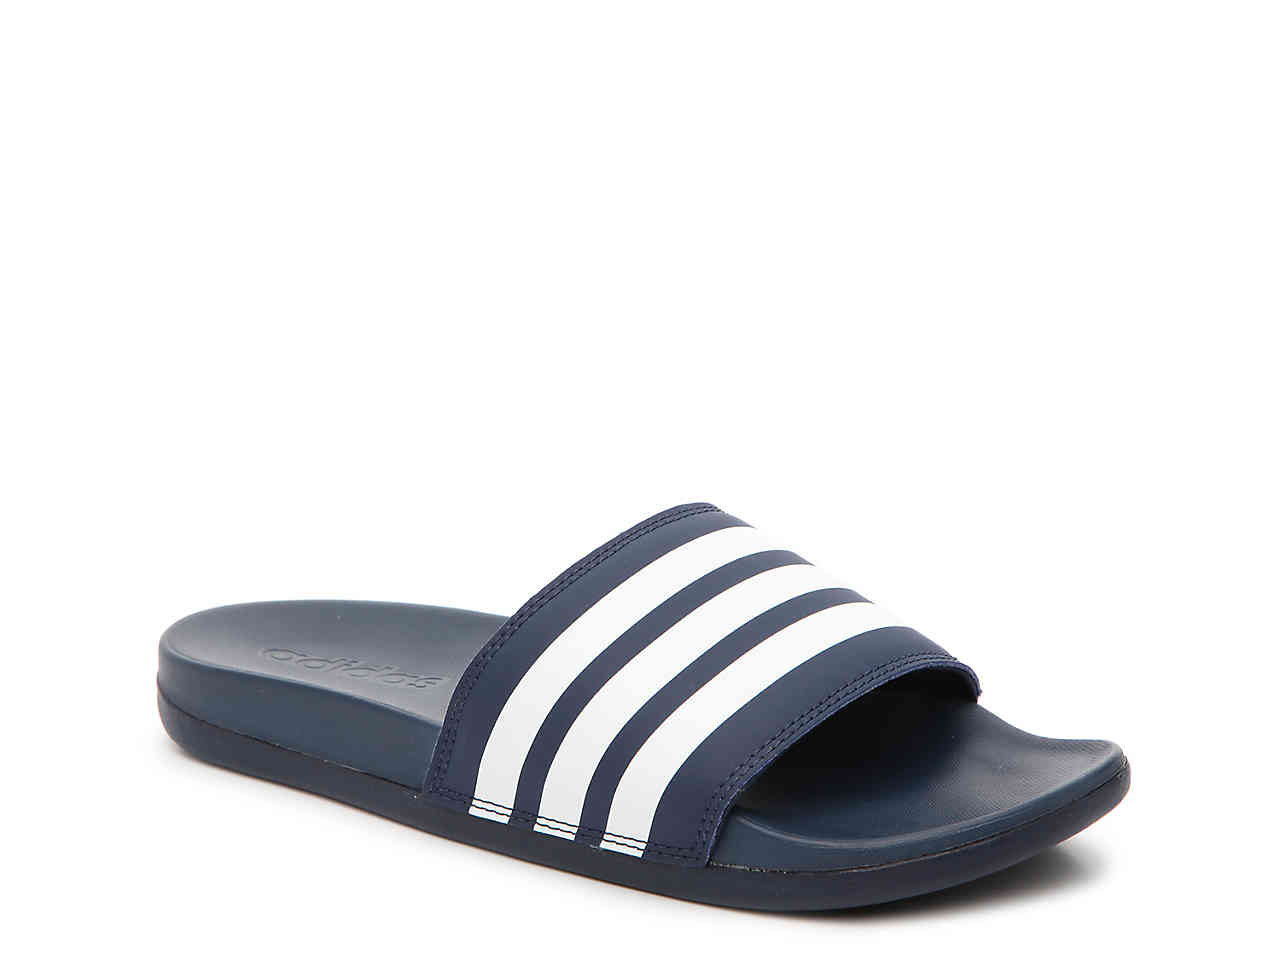 Adidas Sandals   Buy cheap Adidas shoes online - Clvyall.com 0109fed16